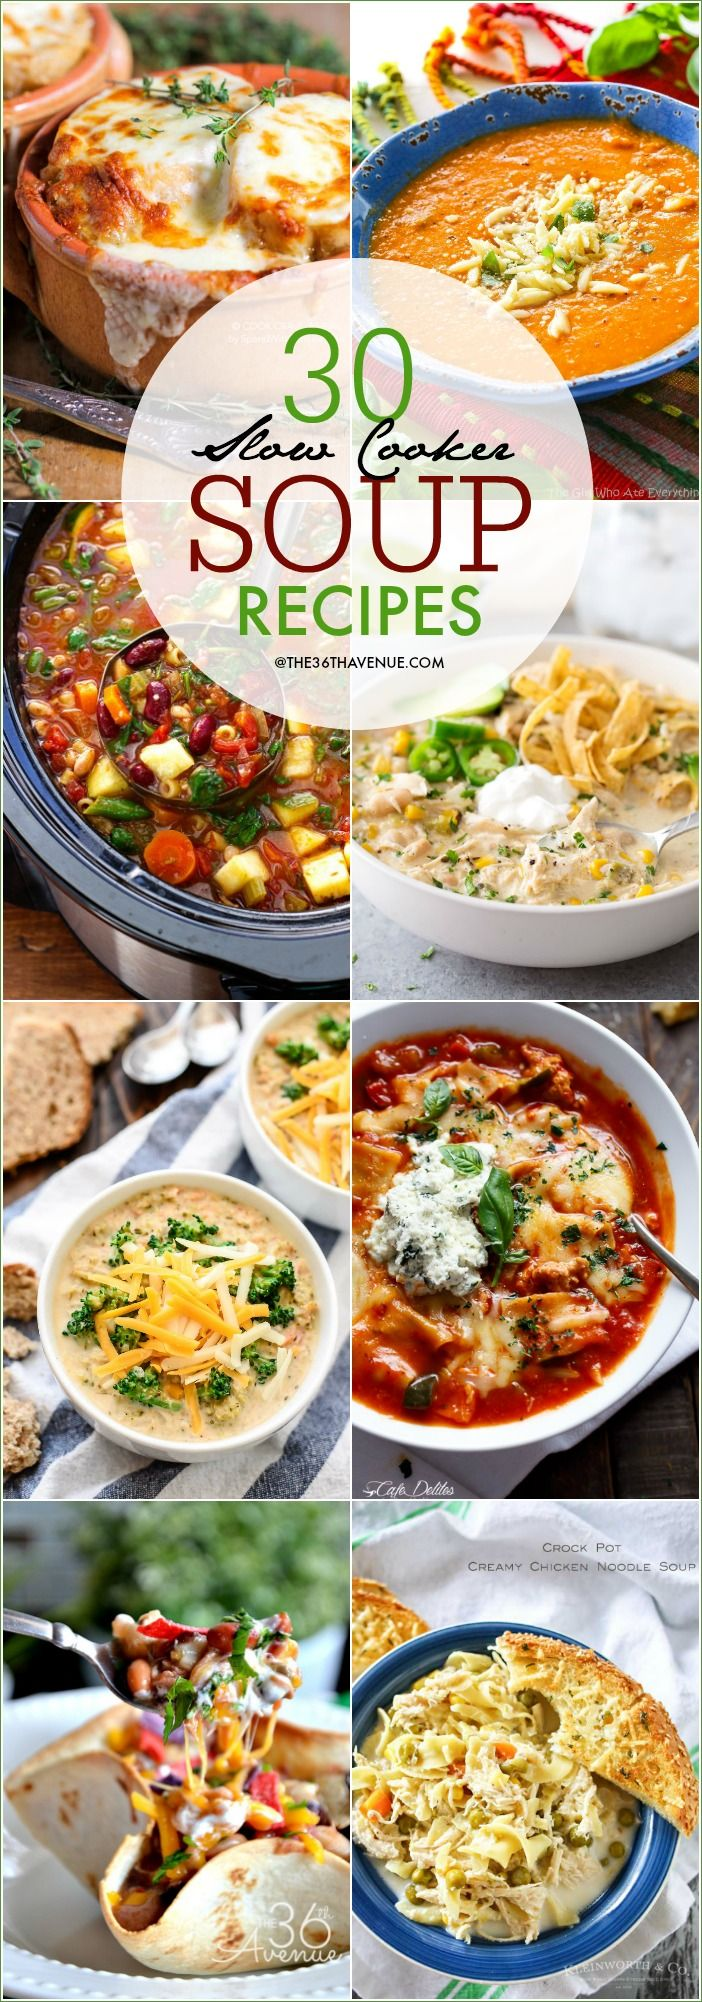 1159 best diy gardening outdoor living ideas images on for Delicious slow cooker soup recipes